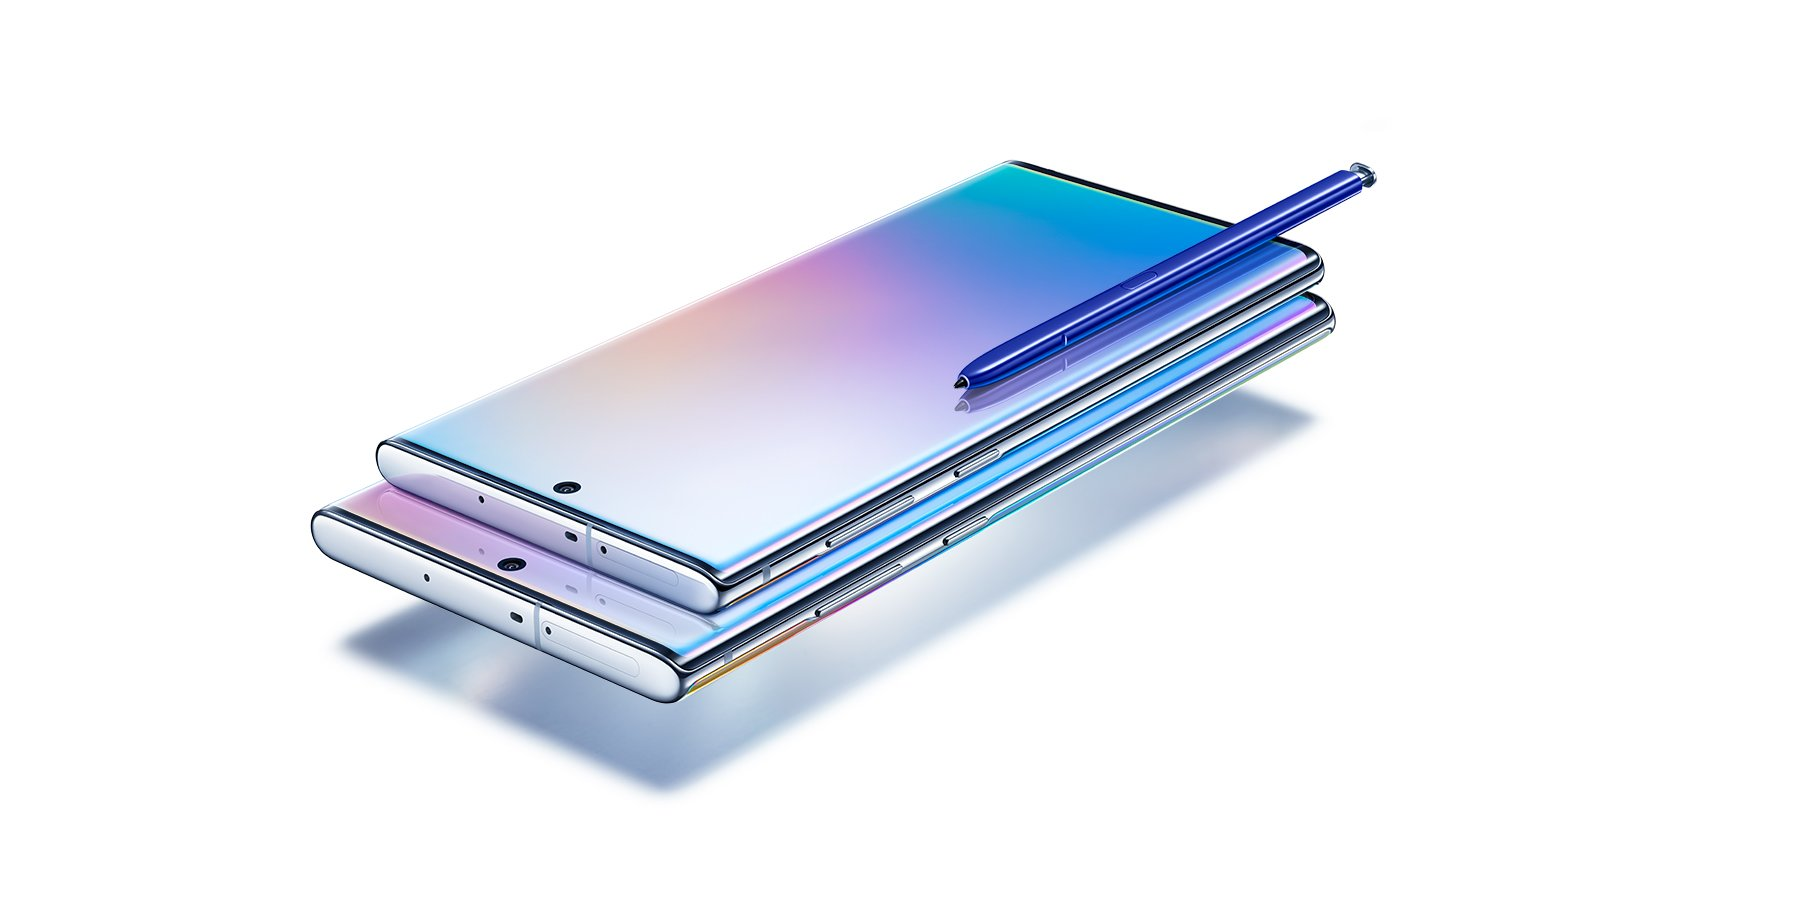 Presentato Il Nuovo Samsung Galaxy Note 10! S Pen Intelligente, Fotocamera Professionale 5 - Hynerd.it